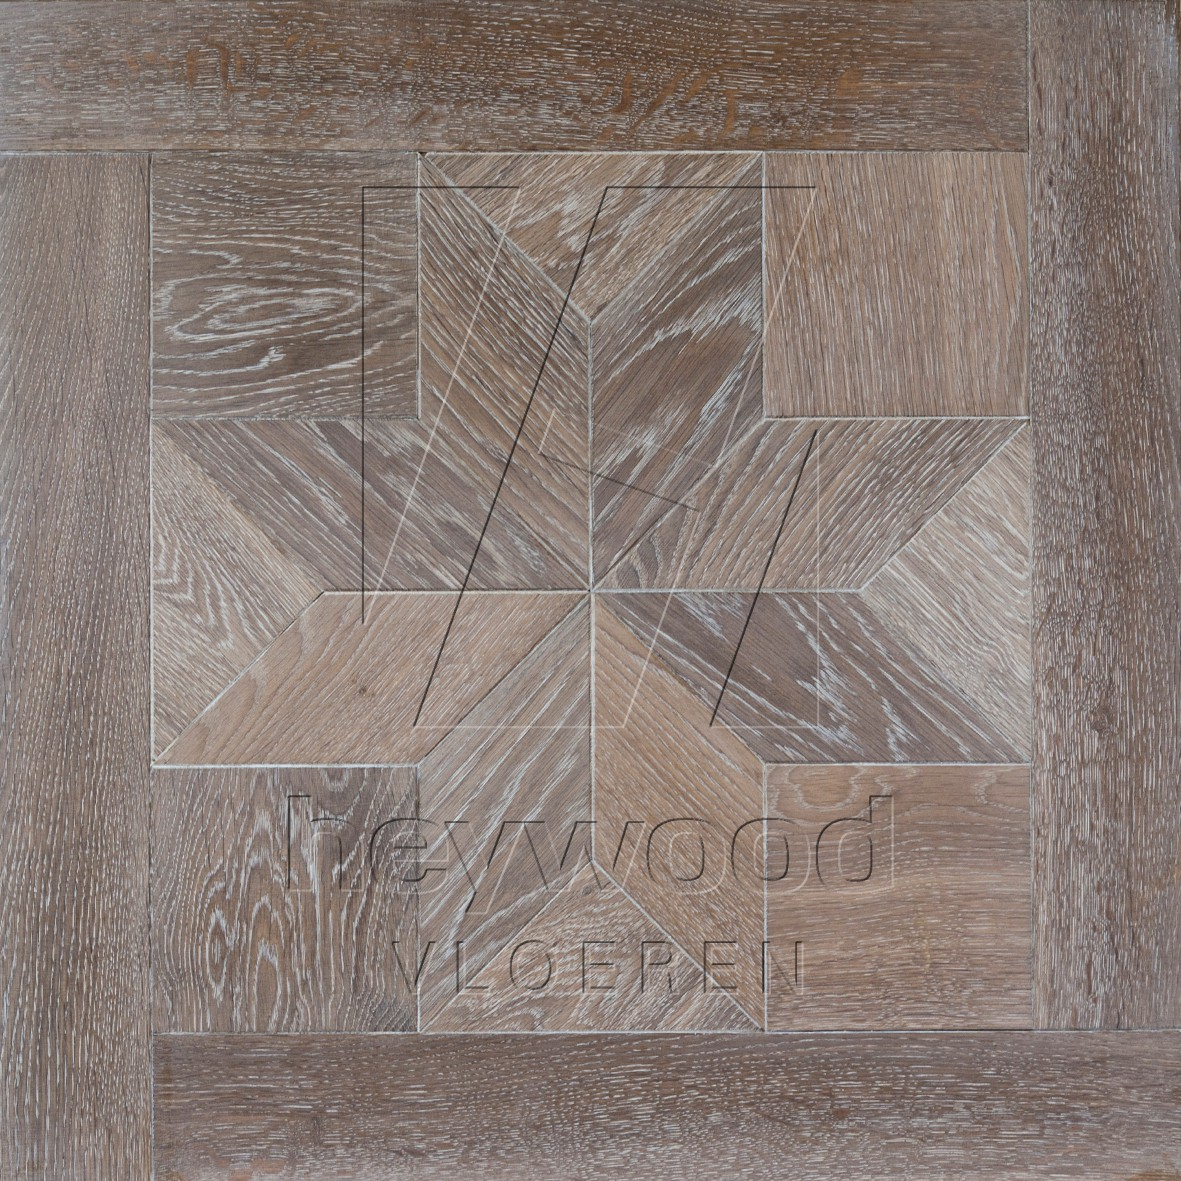 Etoile Panel in Floor & Wall Panels of Pattern & Panel Floors